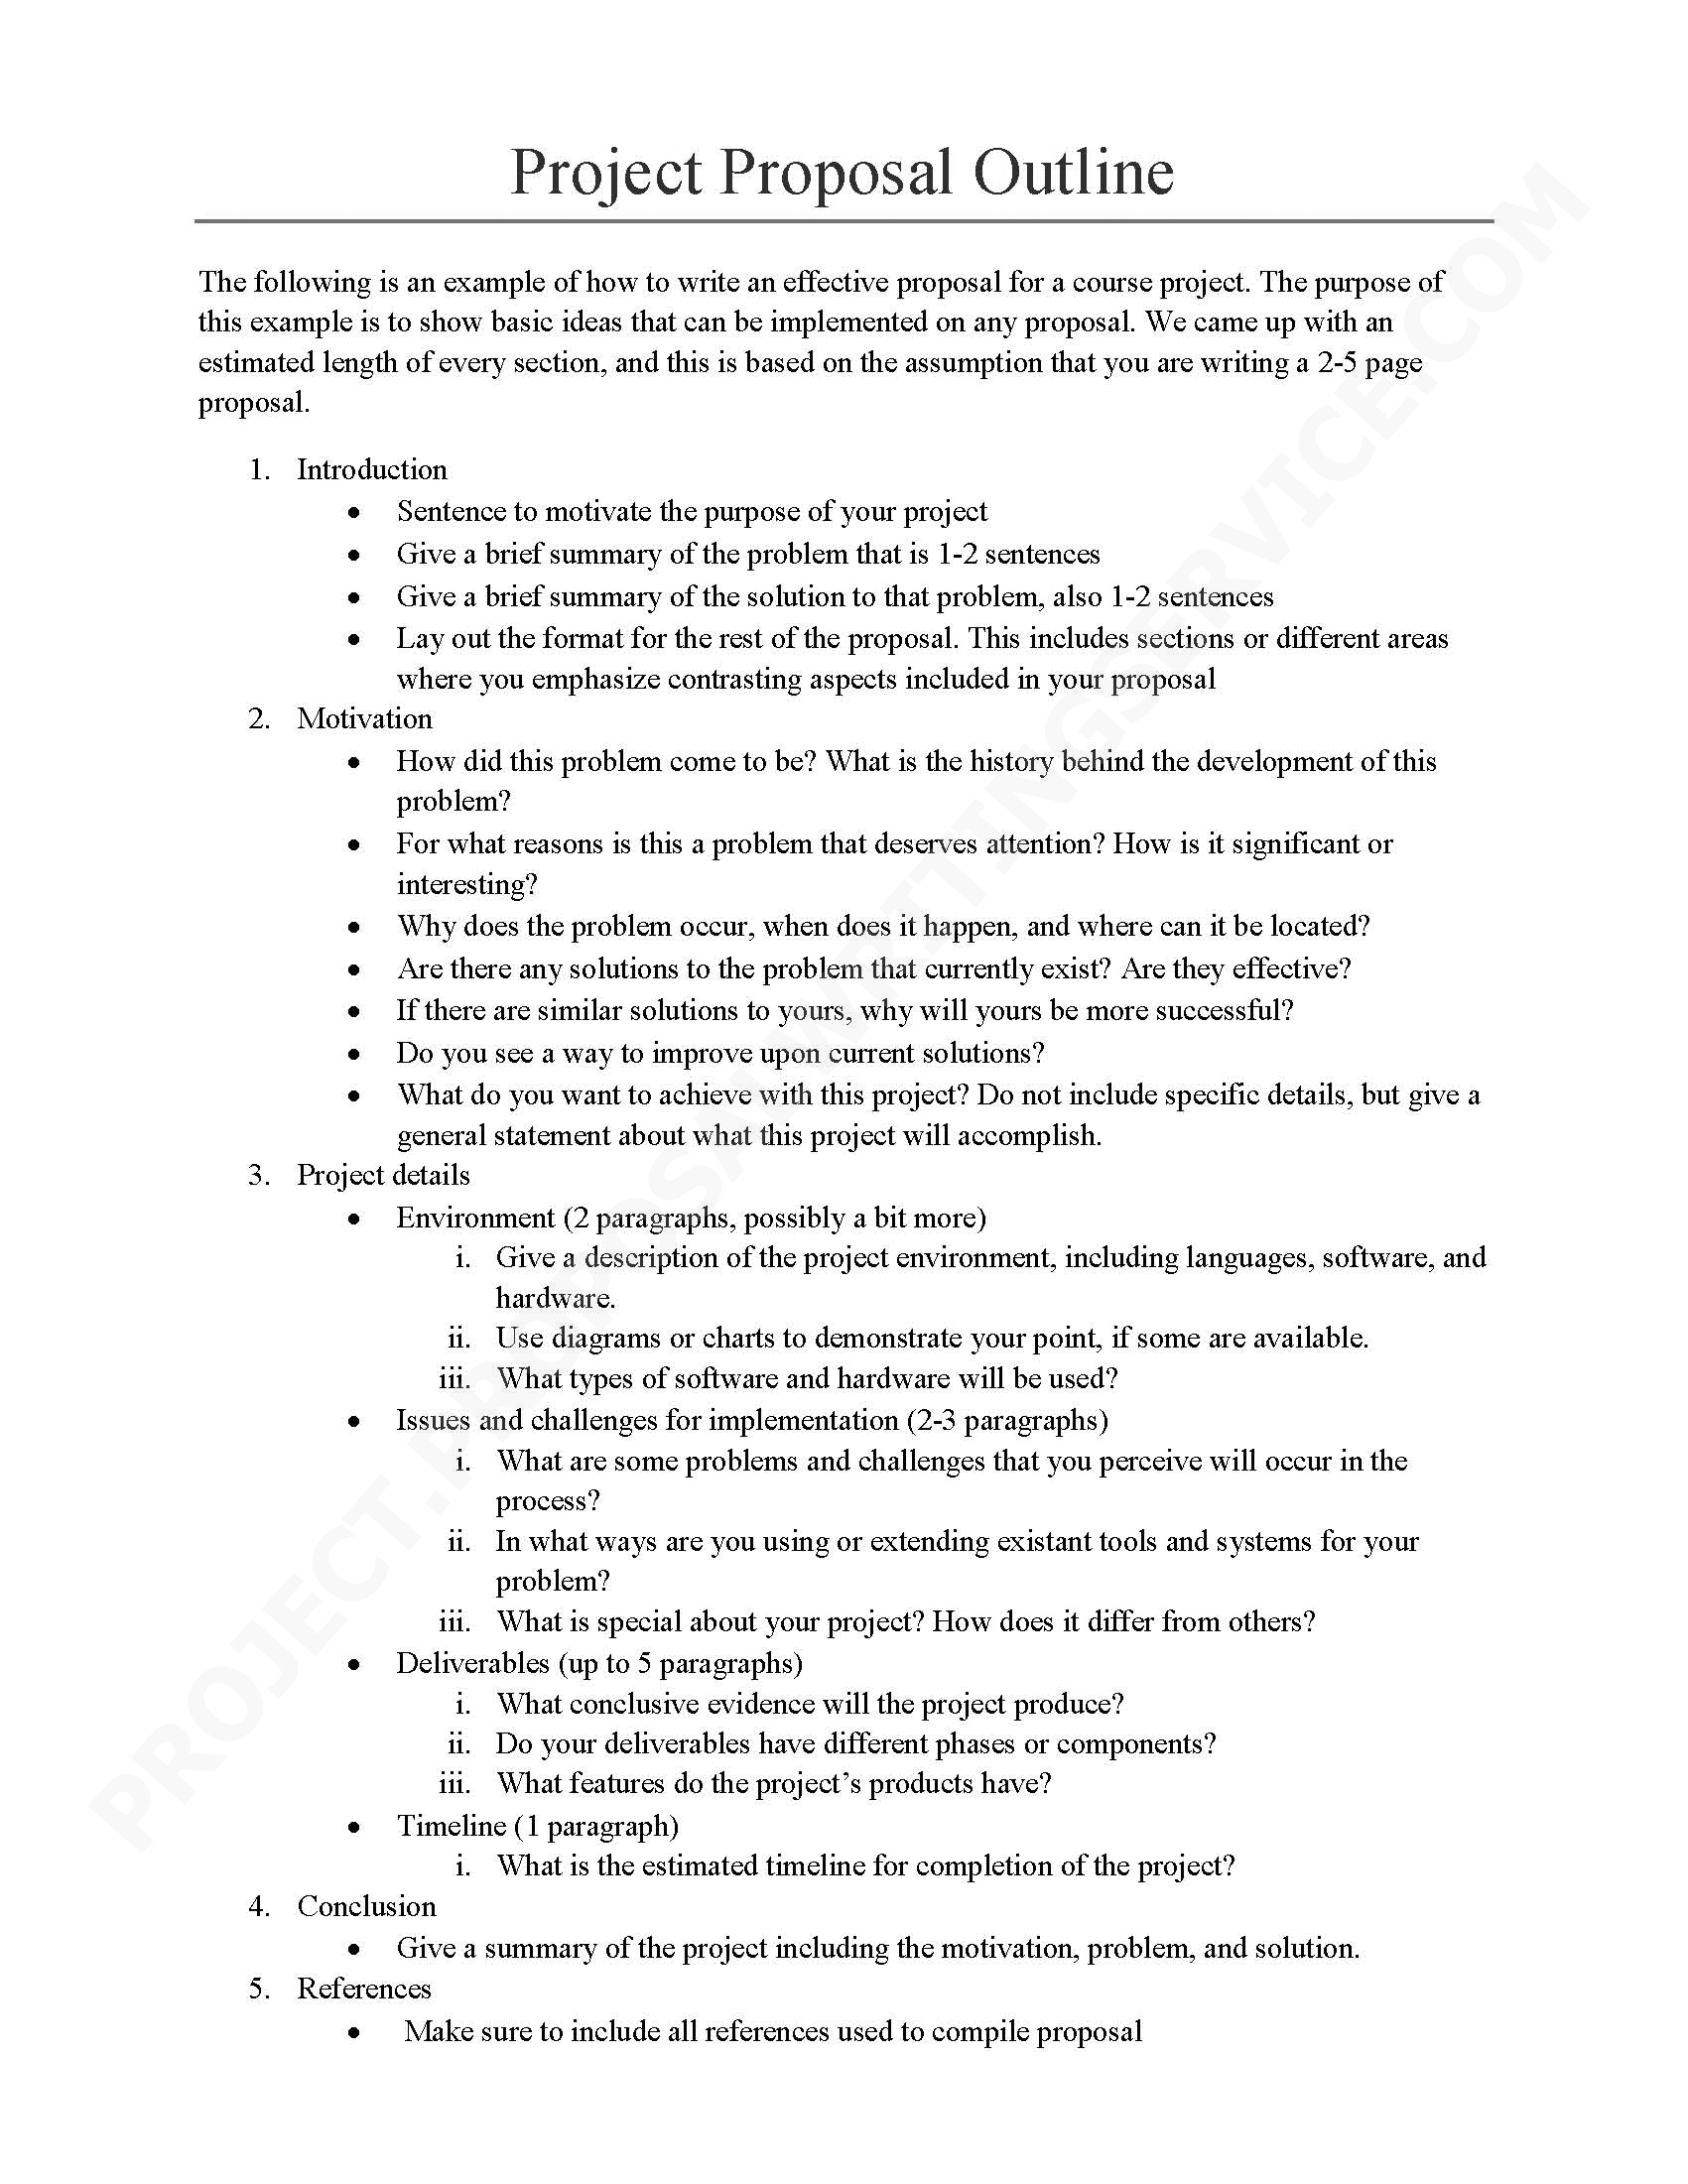 How to write a proposal essay outline